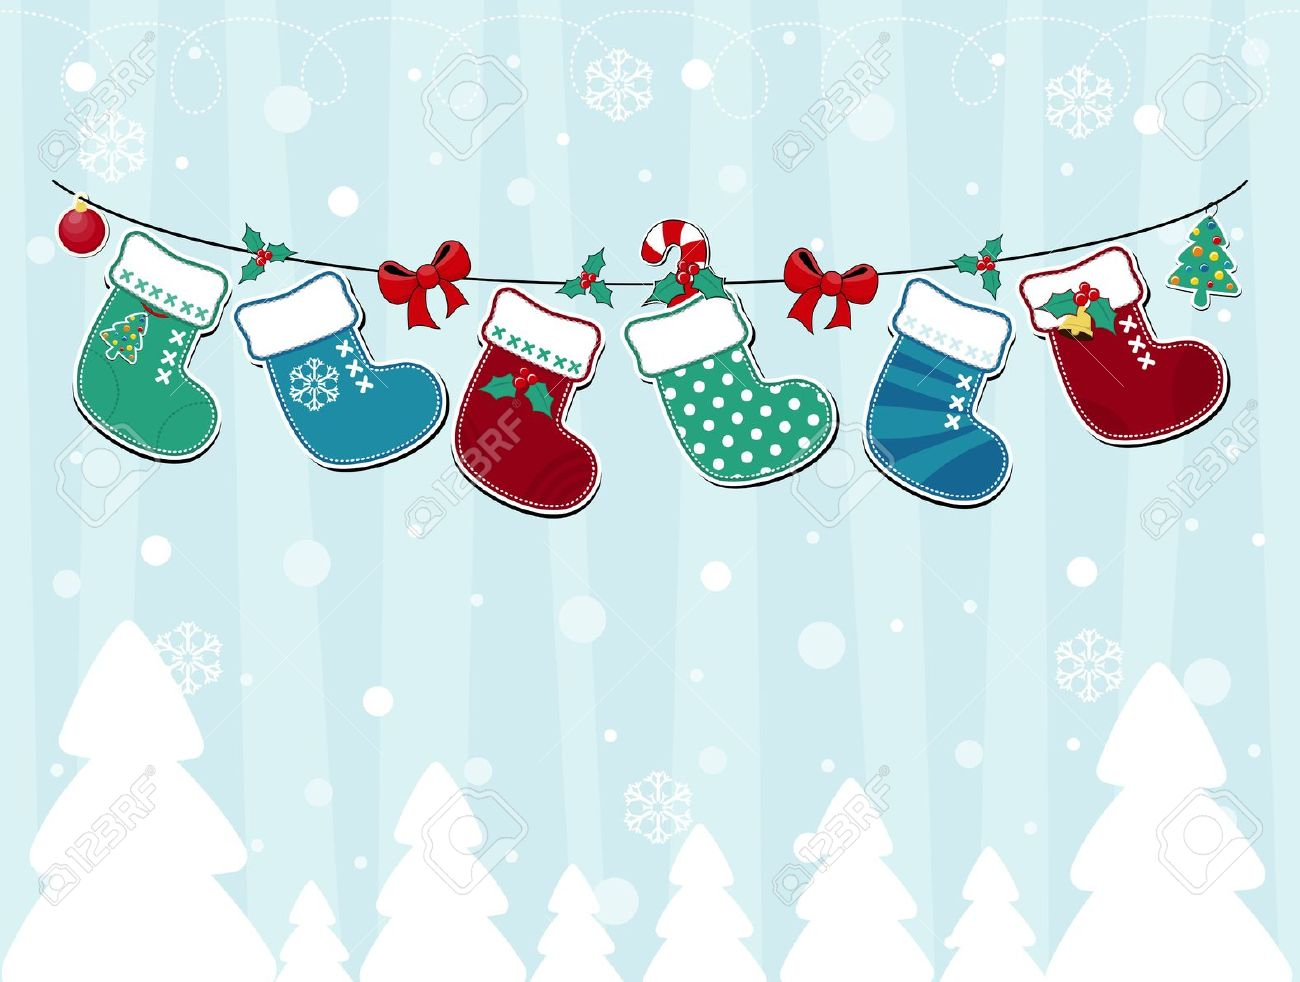 Winter Decorations Clipart.